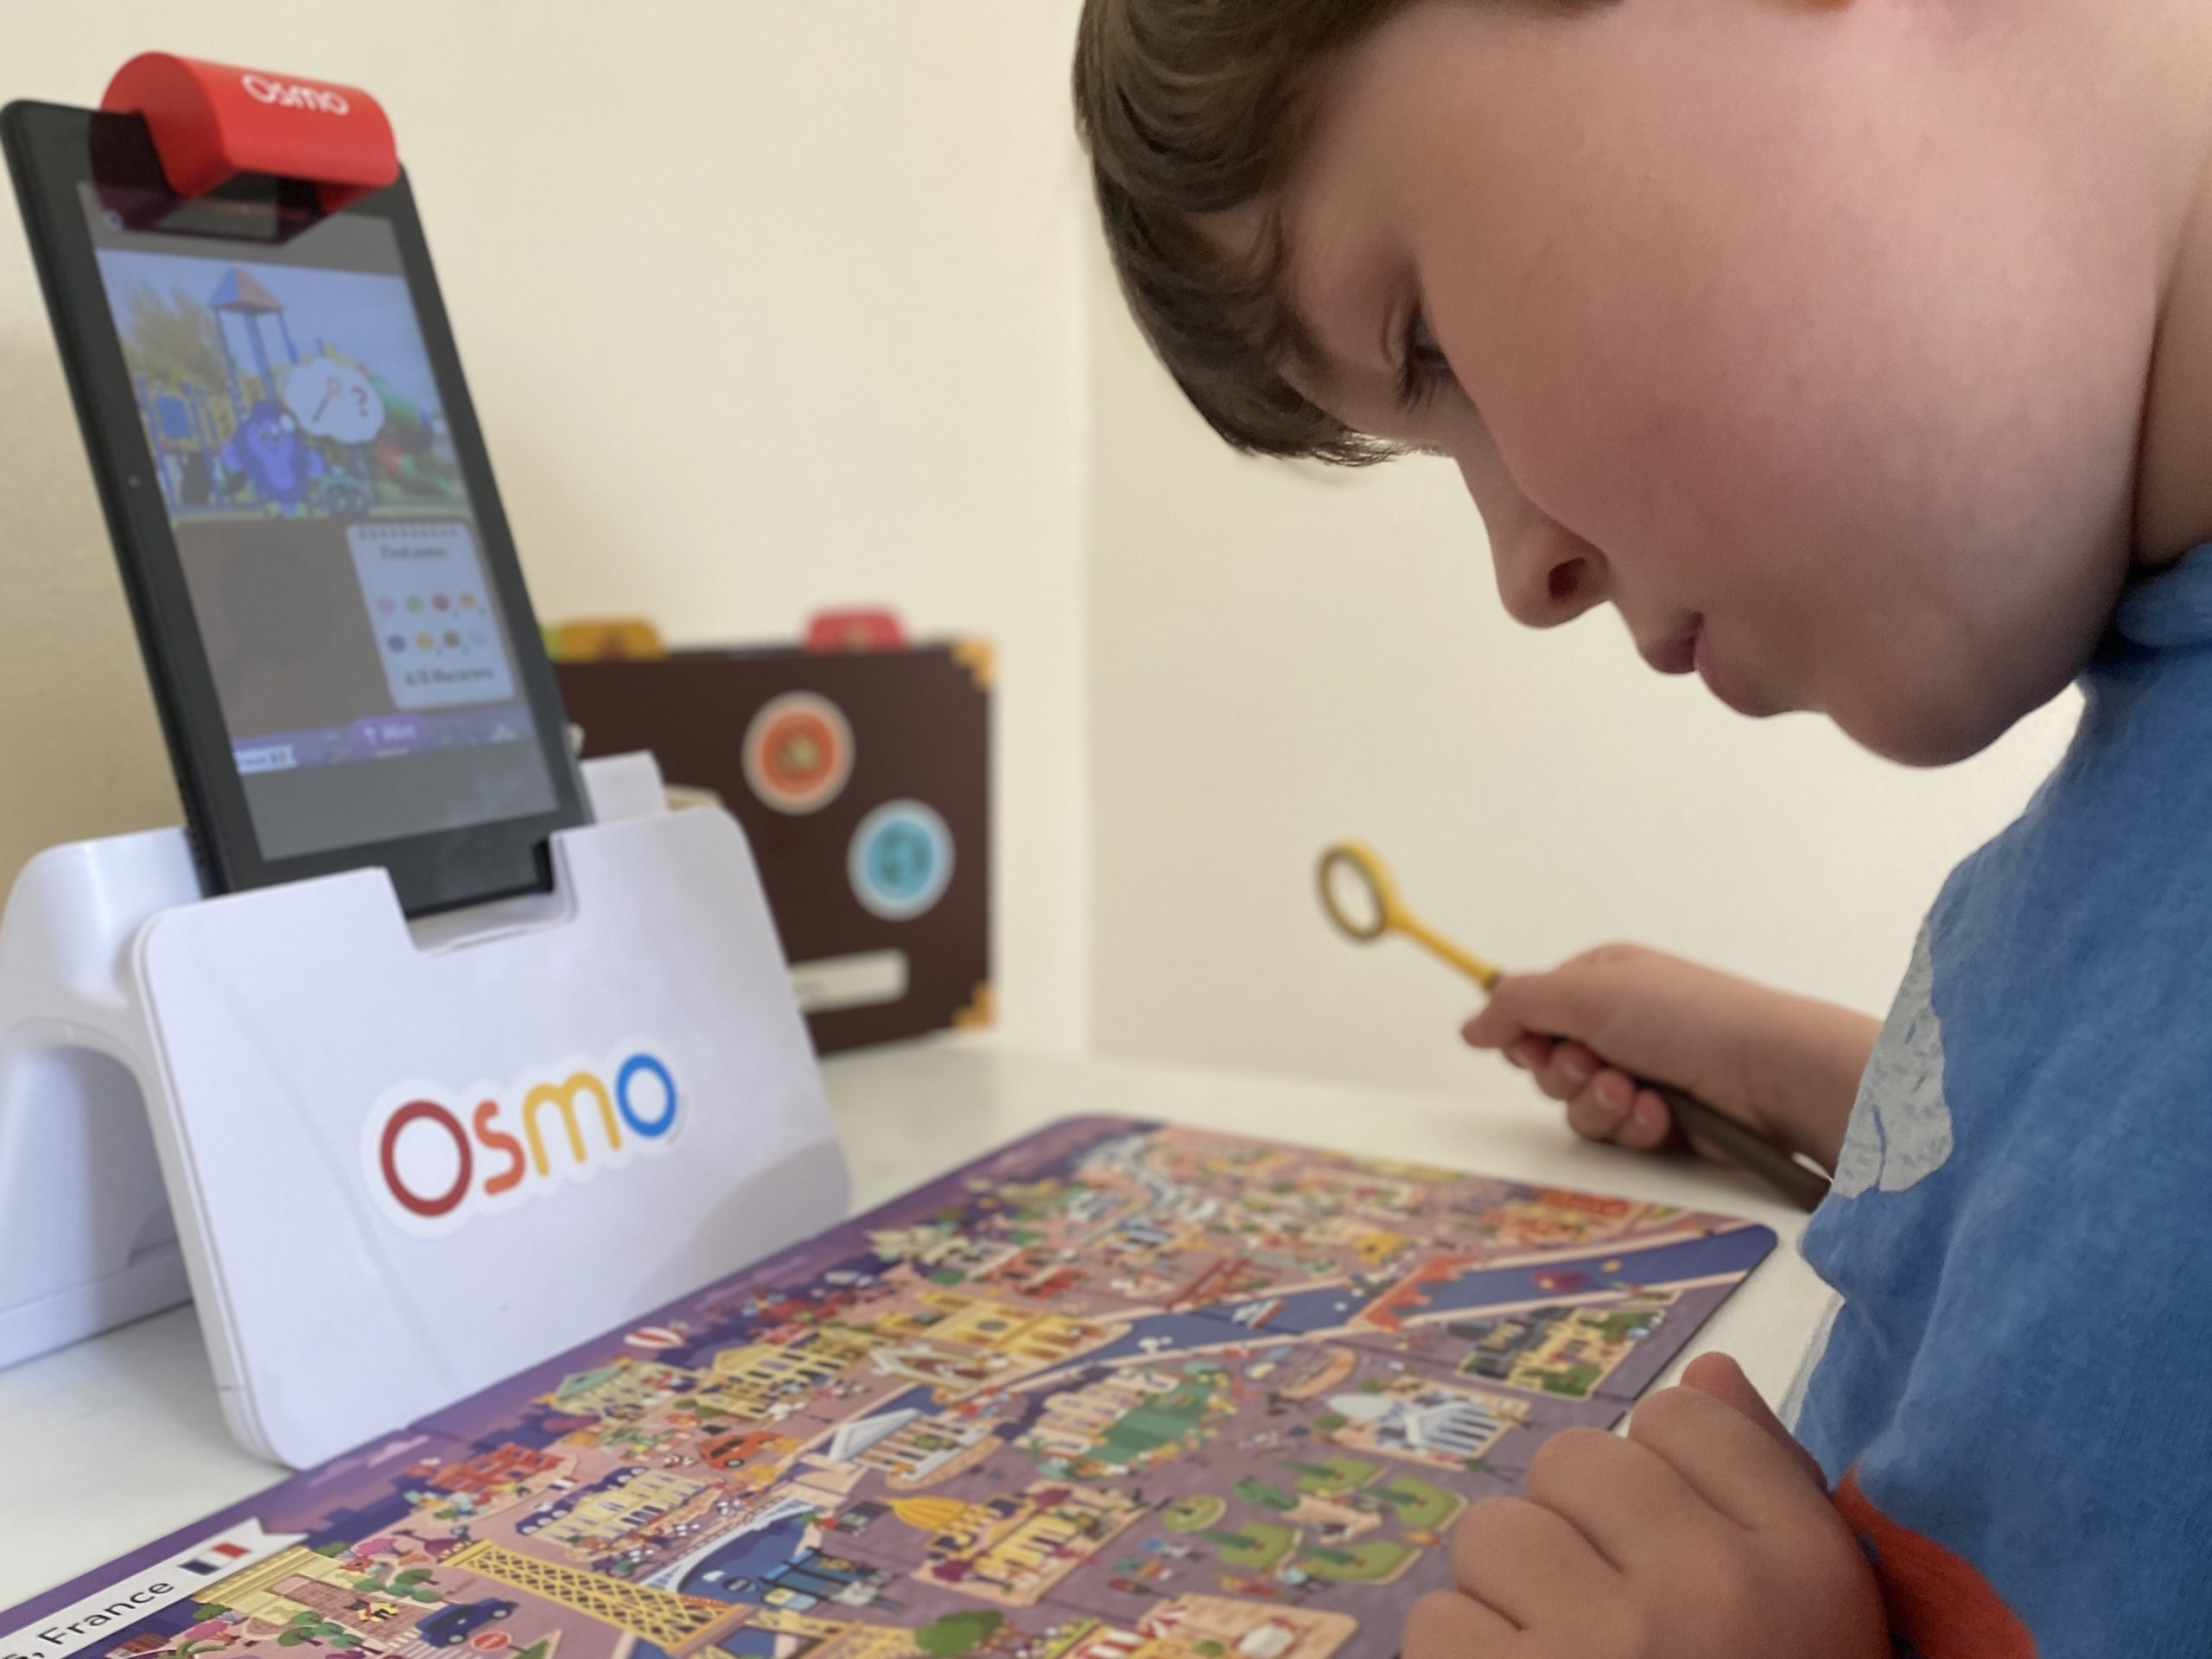 A boy using the Osmo game with a magnifying glass